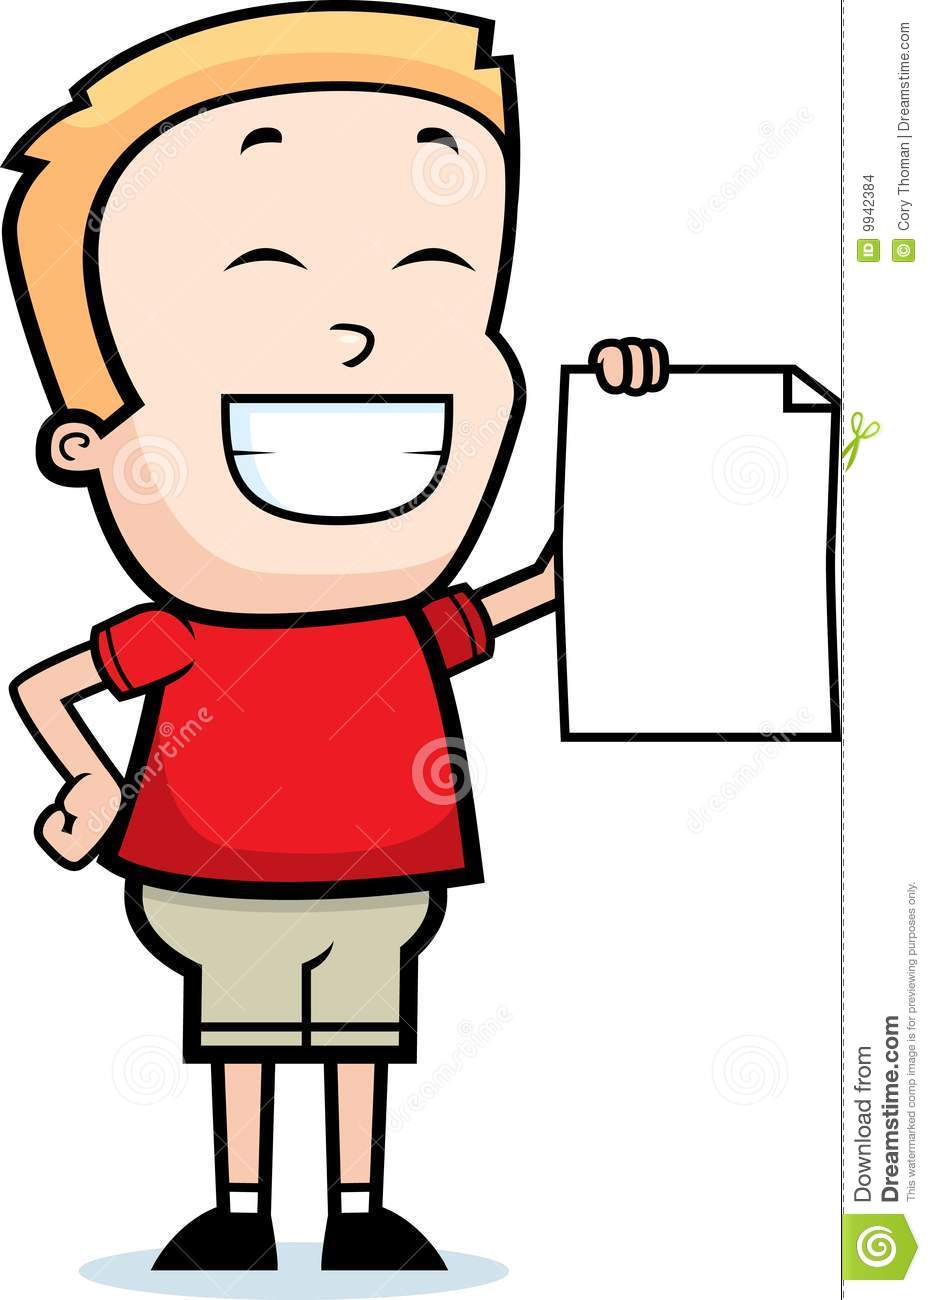 cartoon boy smiling and holding a piece of paper.